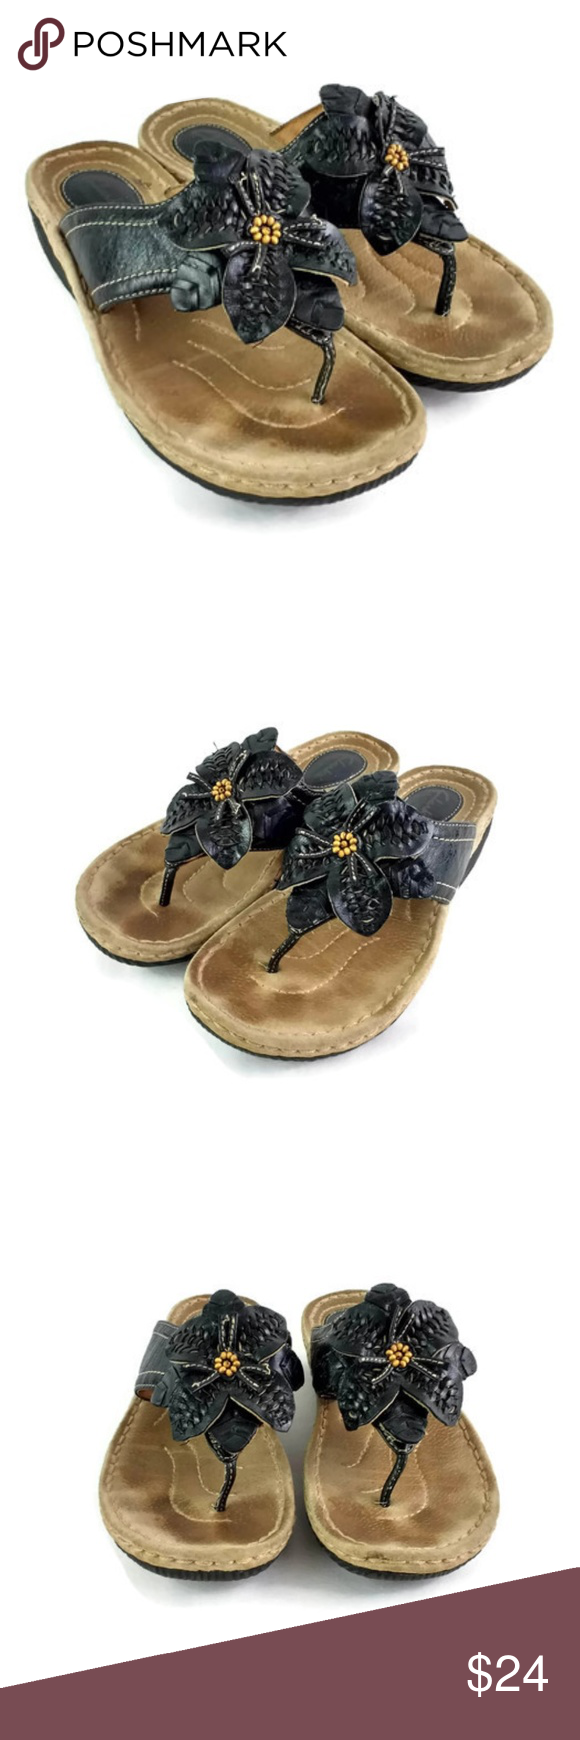 24a0af48442bfc Clarks Artisan Black Leather Flower Thong Sandals Clarks Artisan Women s  Sandals. Size 7 M. Black leather with flower on strap. Heel measures 1.5